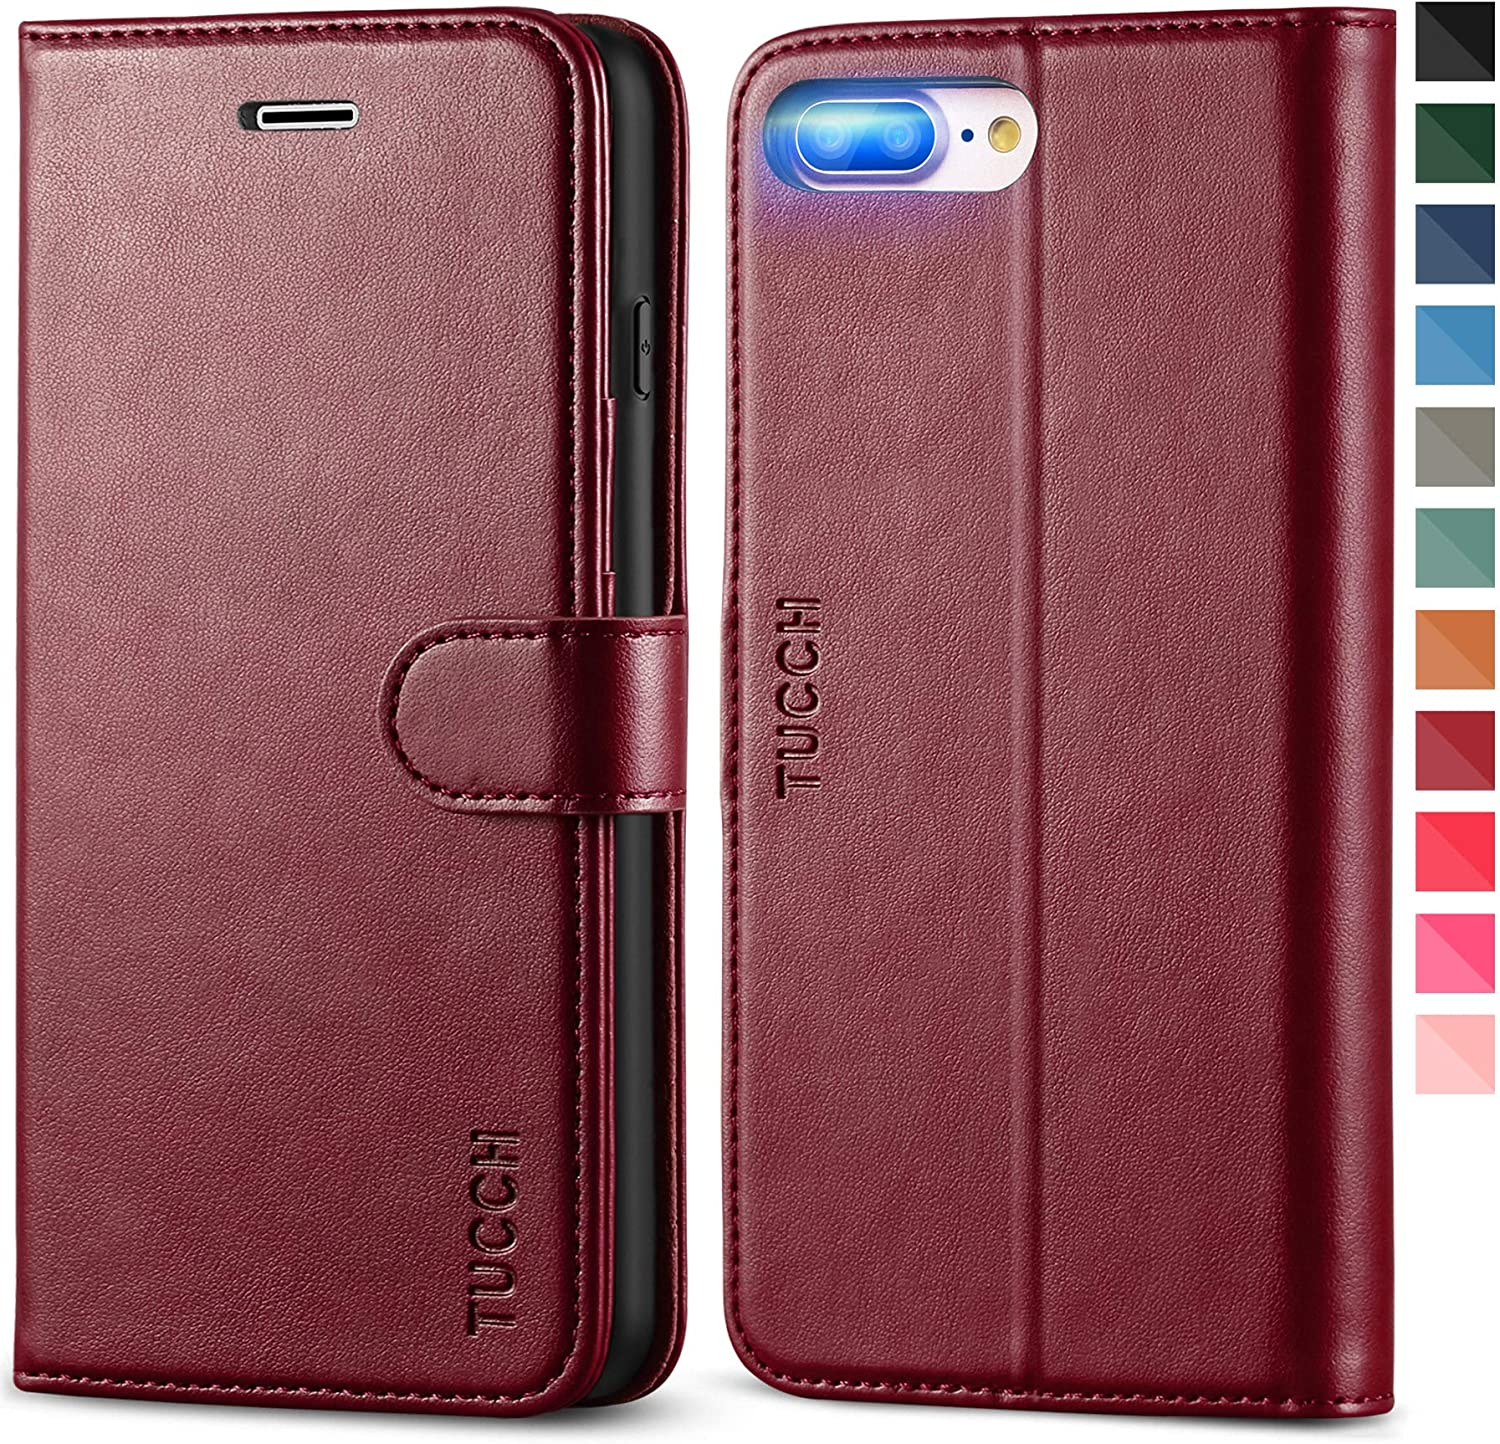 TUCCH iPhone 8 Plus Wallet Case, iPhone 7 Plus Case, Premium PU Leather Flip Folio Case with Card Slot Stand Holder Magnetic Closure [TPU Interior Case] Compatible with iPhone 7 Plus/8 Plus, Wine Red